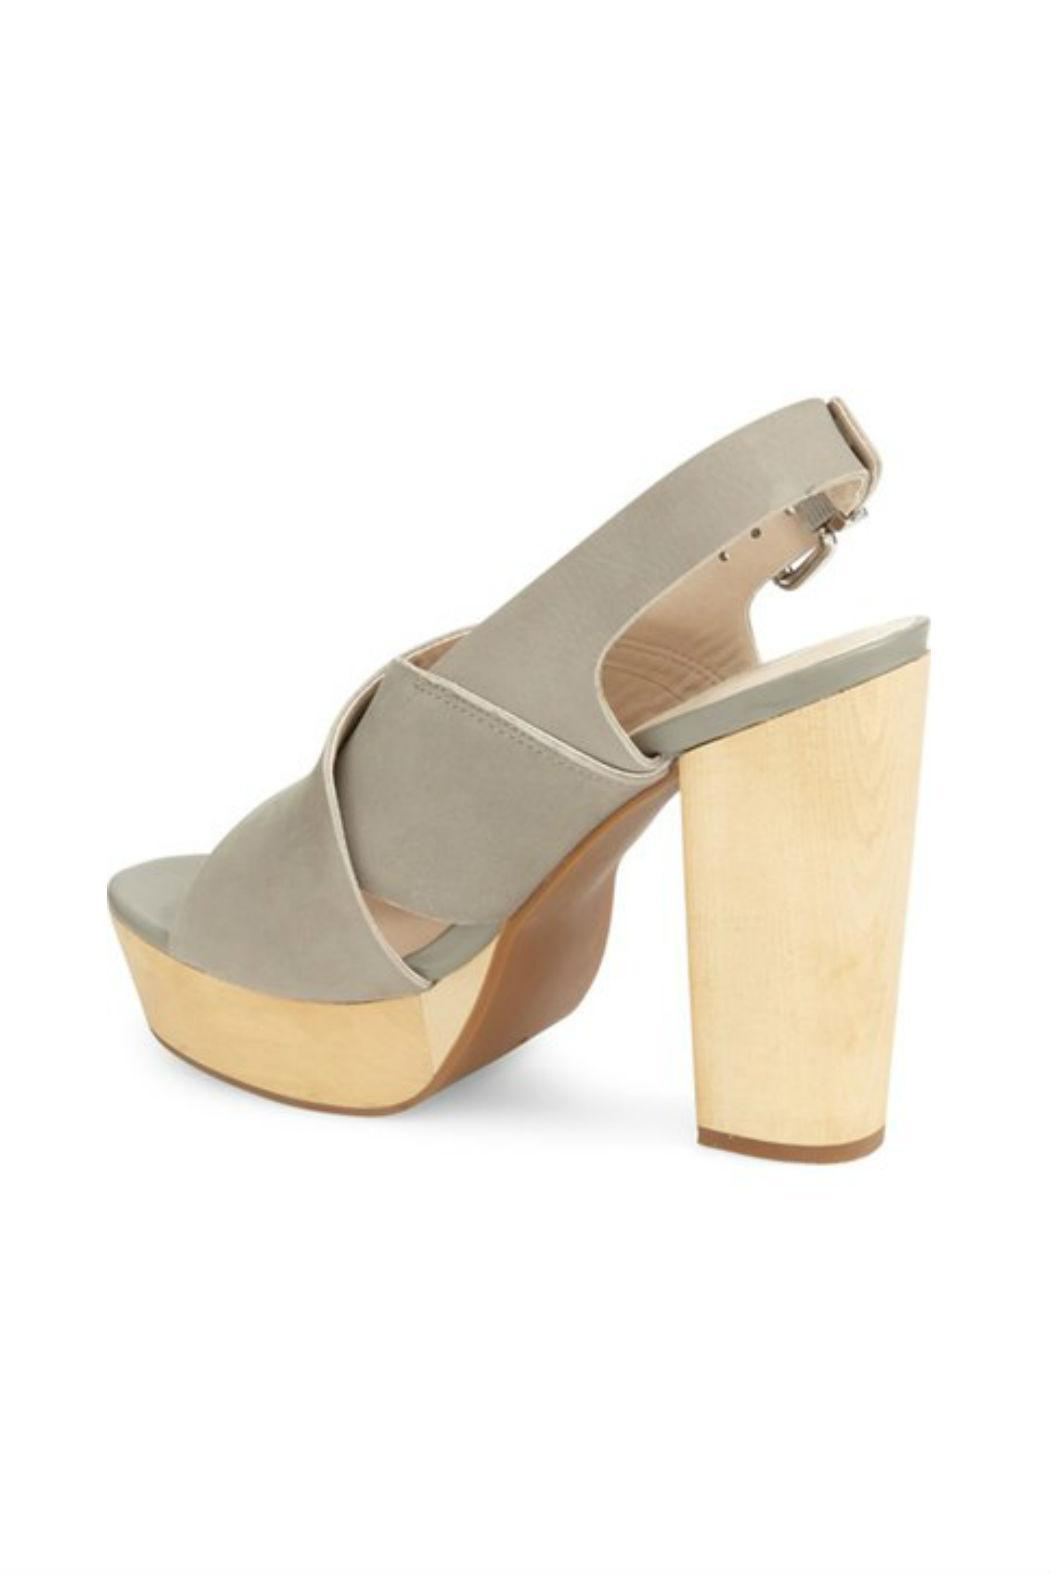 a70e73bc522 Seychelles Gray Platform Sandals from Atlanta by Sole shoes ...